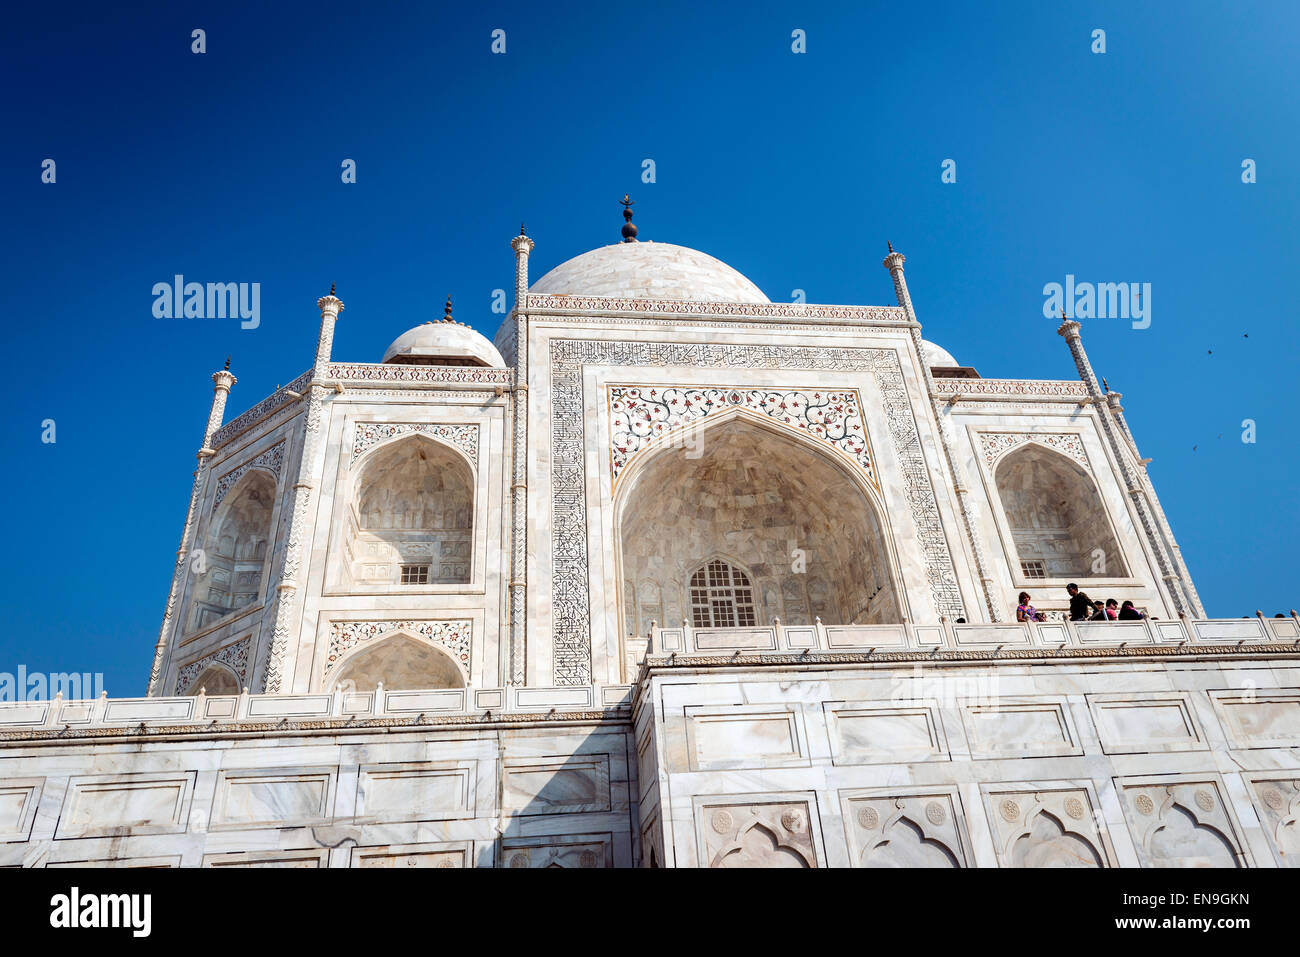 The Taj Mahal, Agra, India - Stock Image